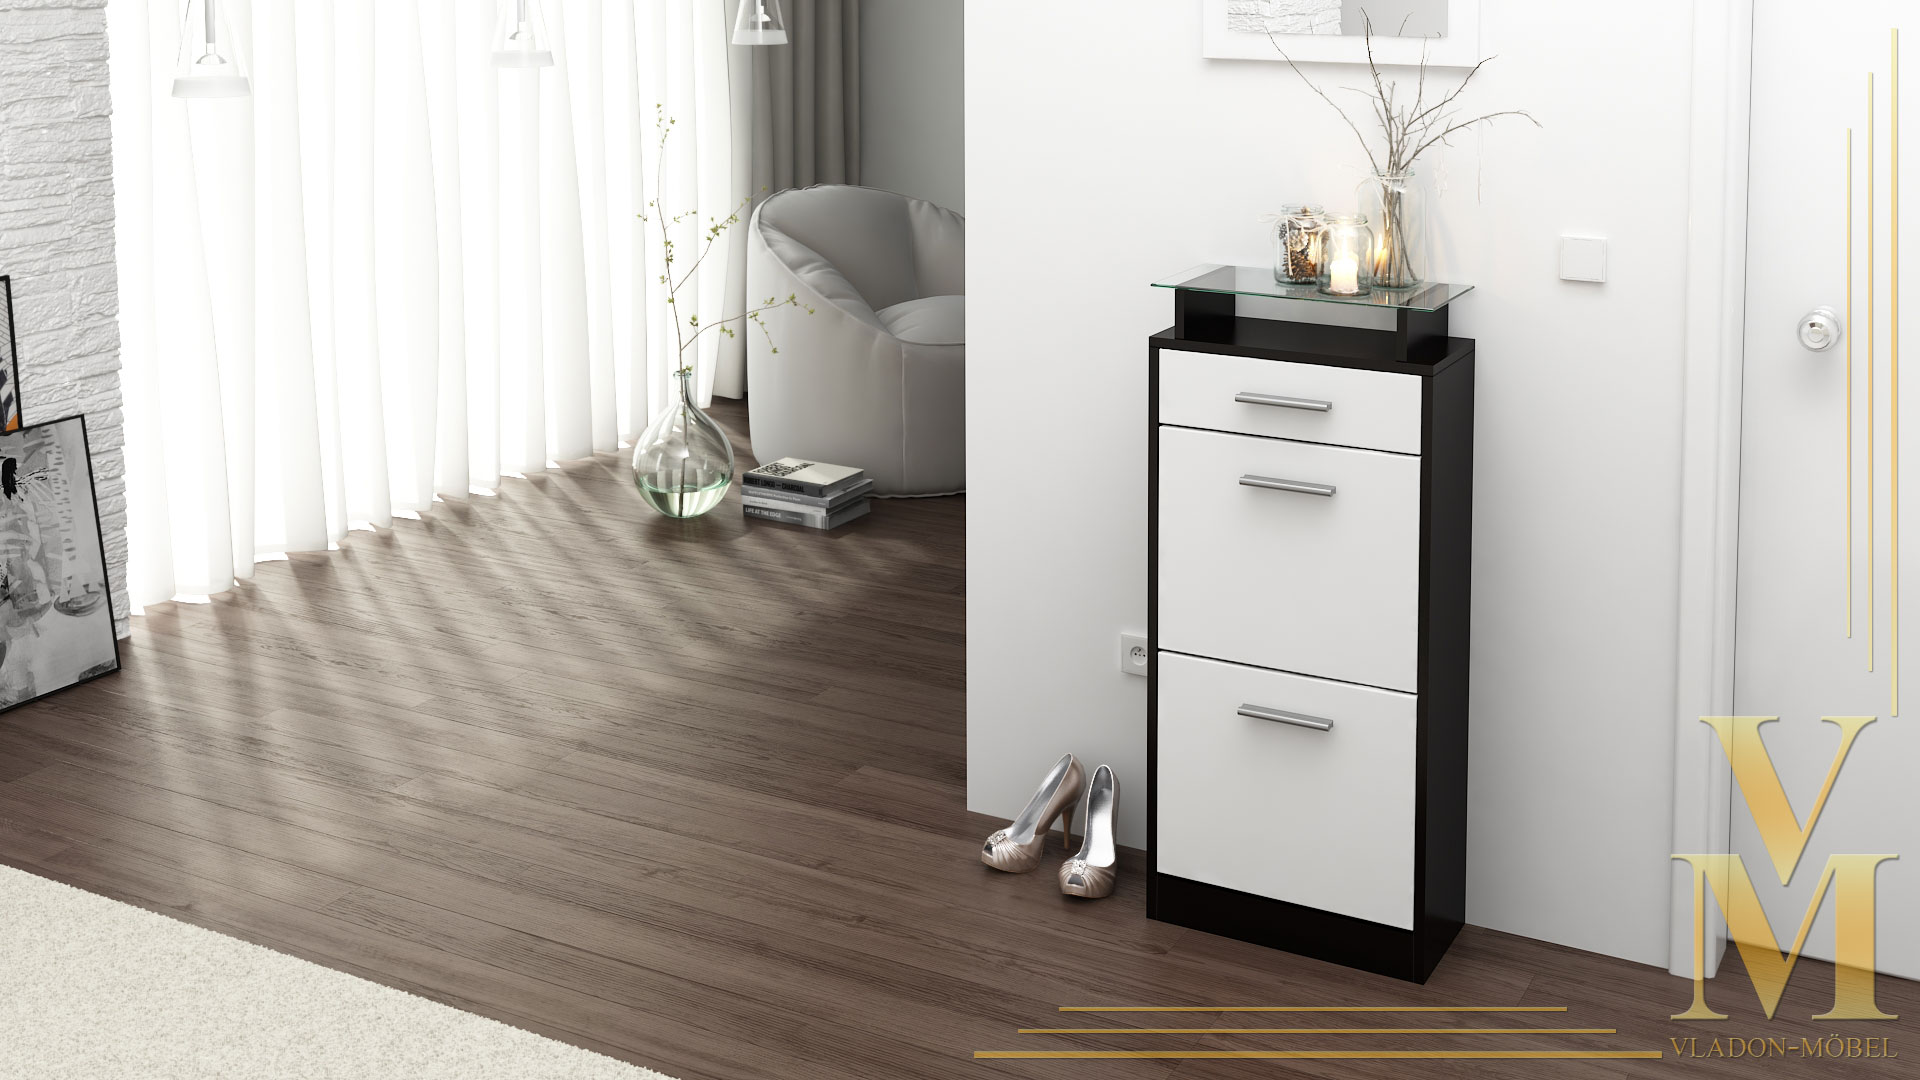 schuhschrank schuhkipper schuh loret v2 in schwarz hochglanz matt naturt ne ebay. Black Bedroom Furniture Sets. Home Design Ideas